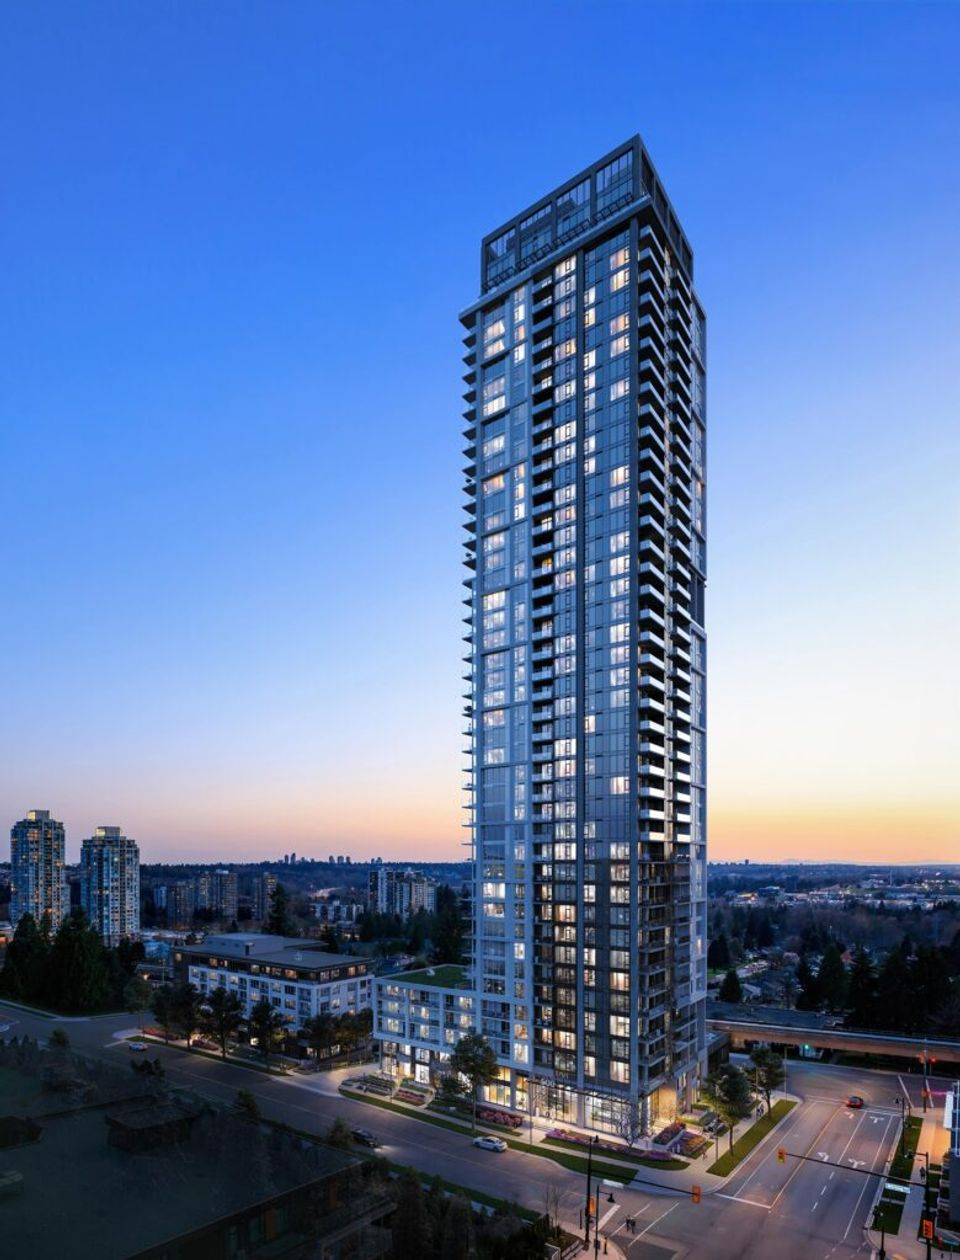 tower-hd-min-780x1024 at Vue (638 Whiting Way, Coquitlam West, Coquitlam)